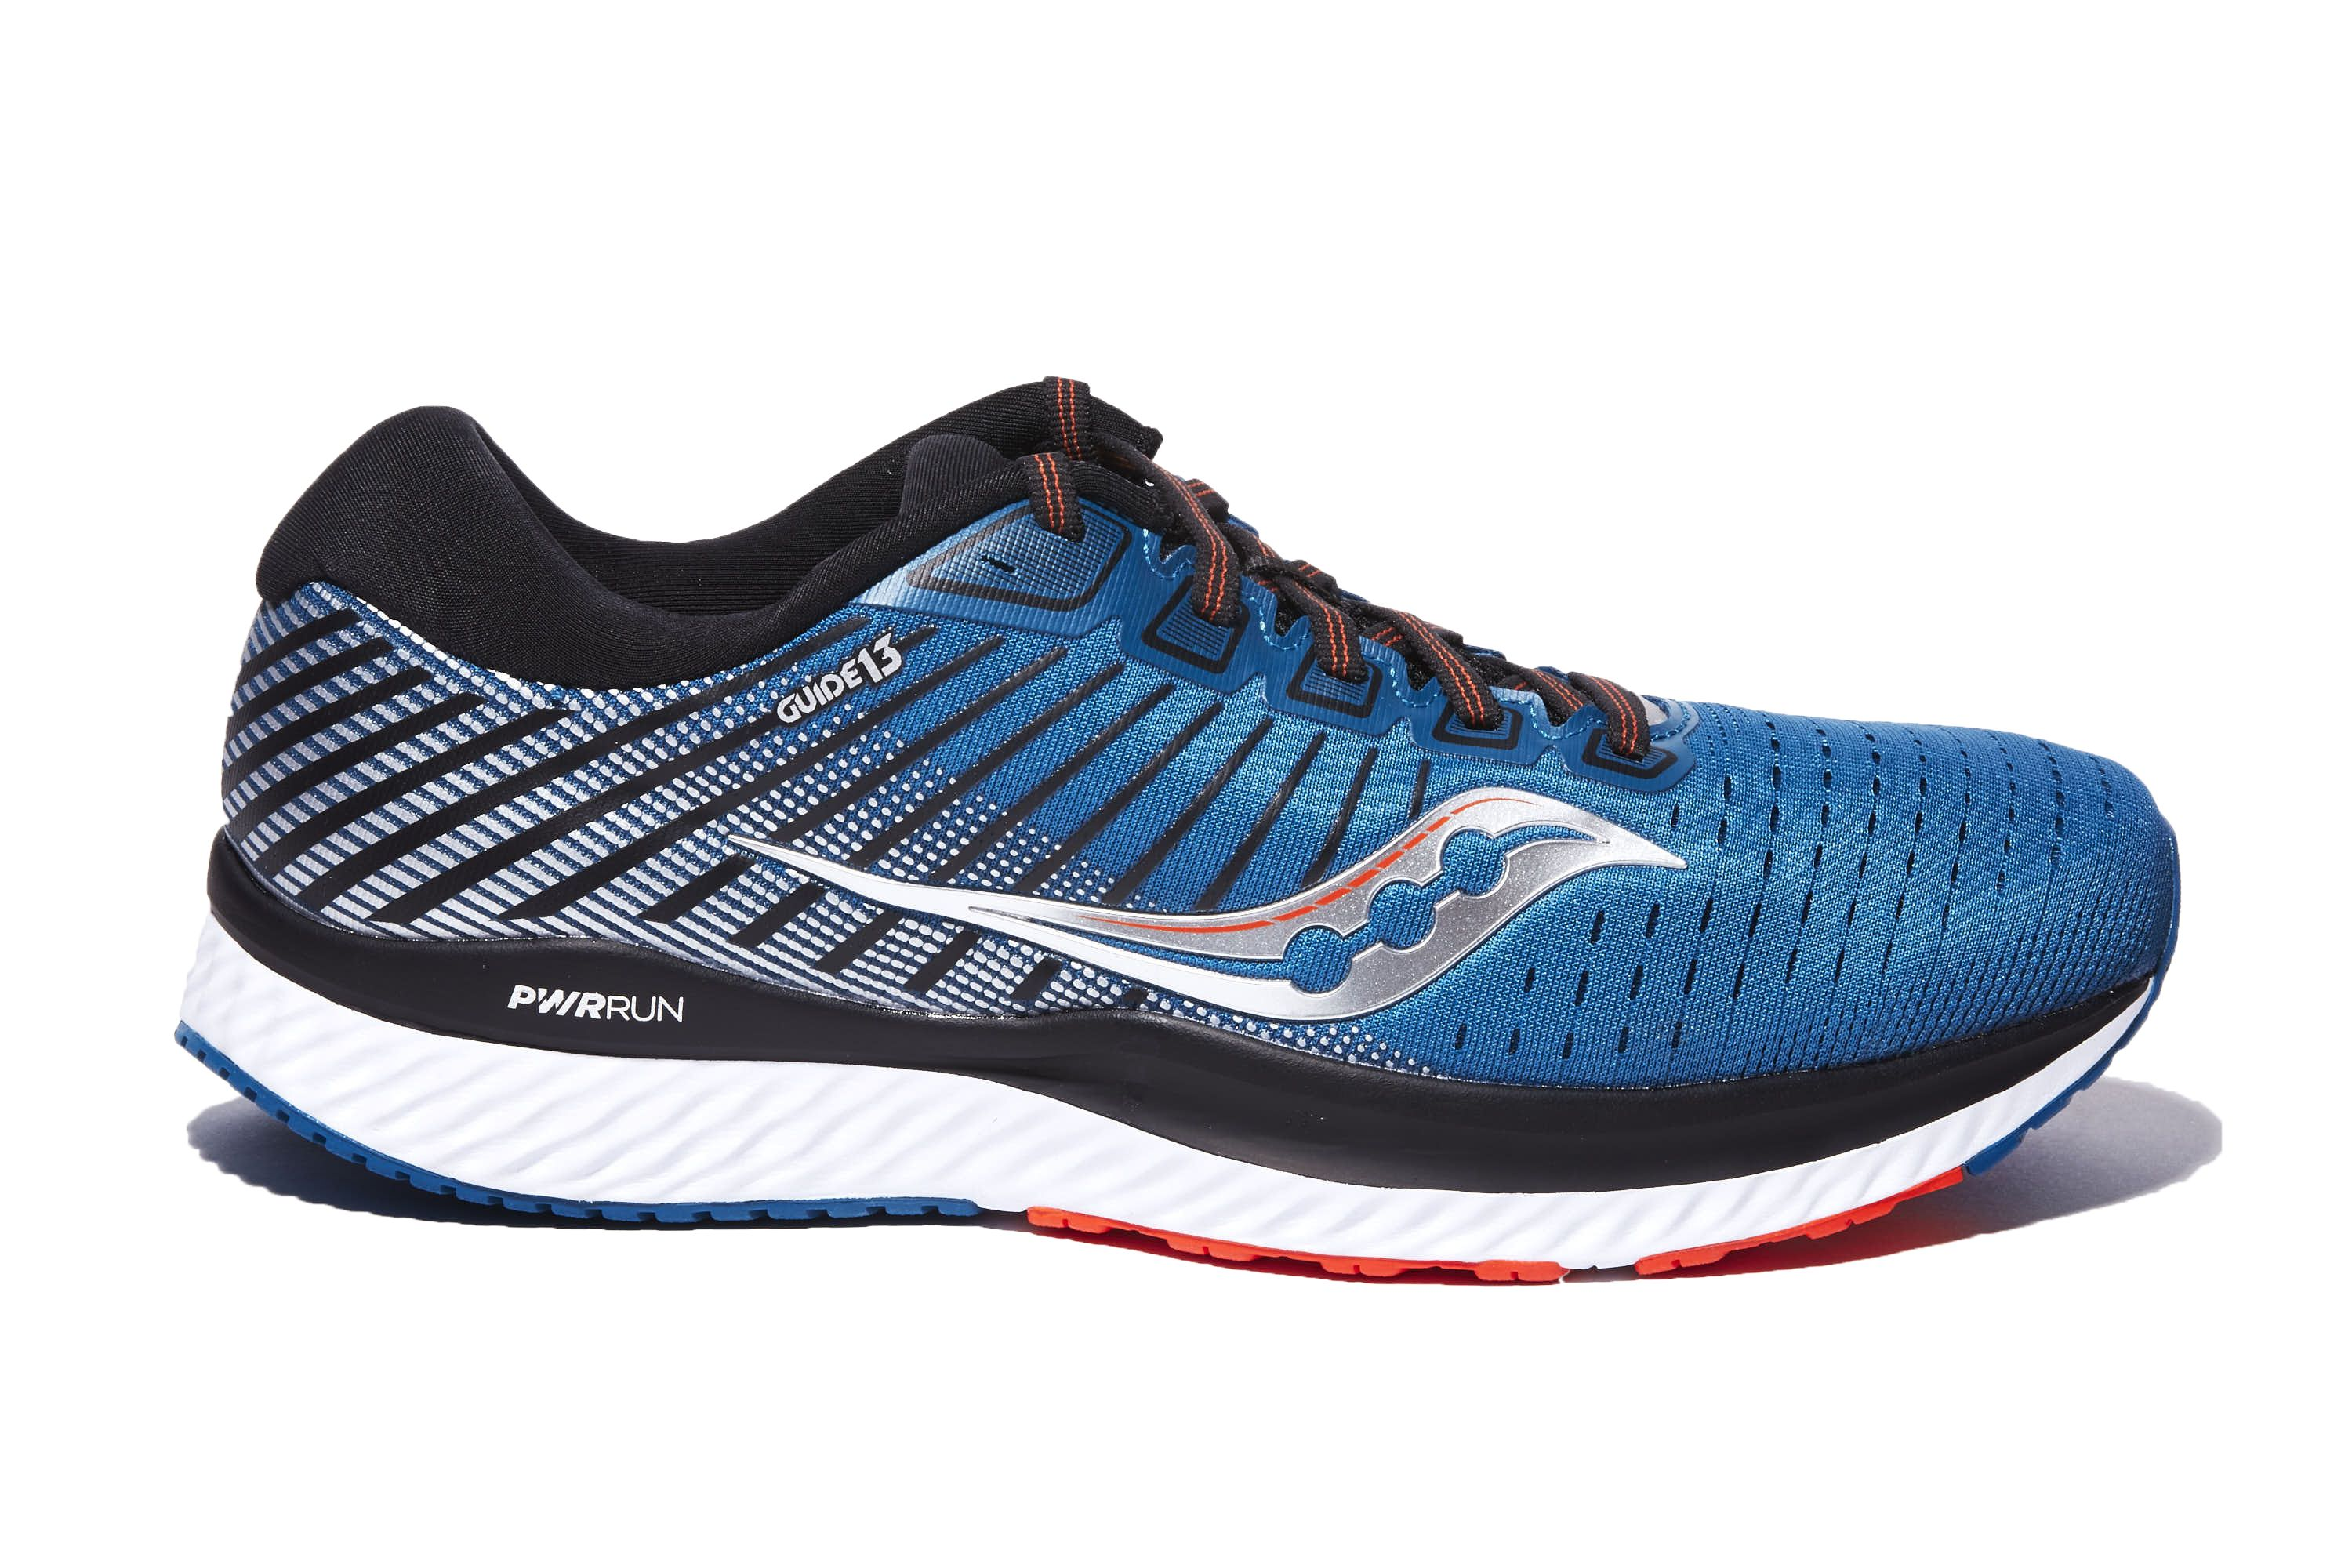 Saucony Guide 13 Review 2020 | Best